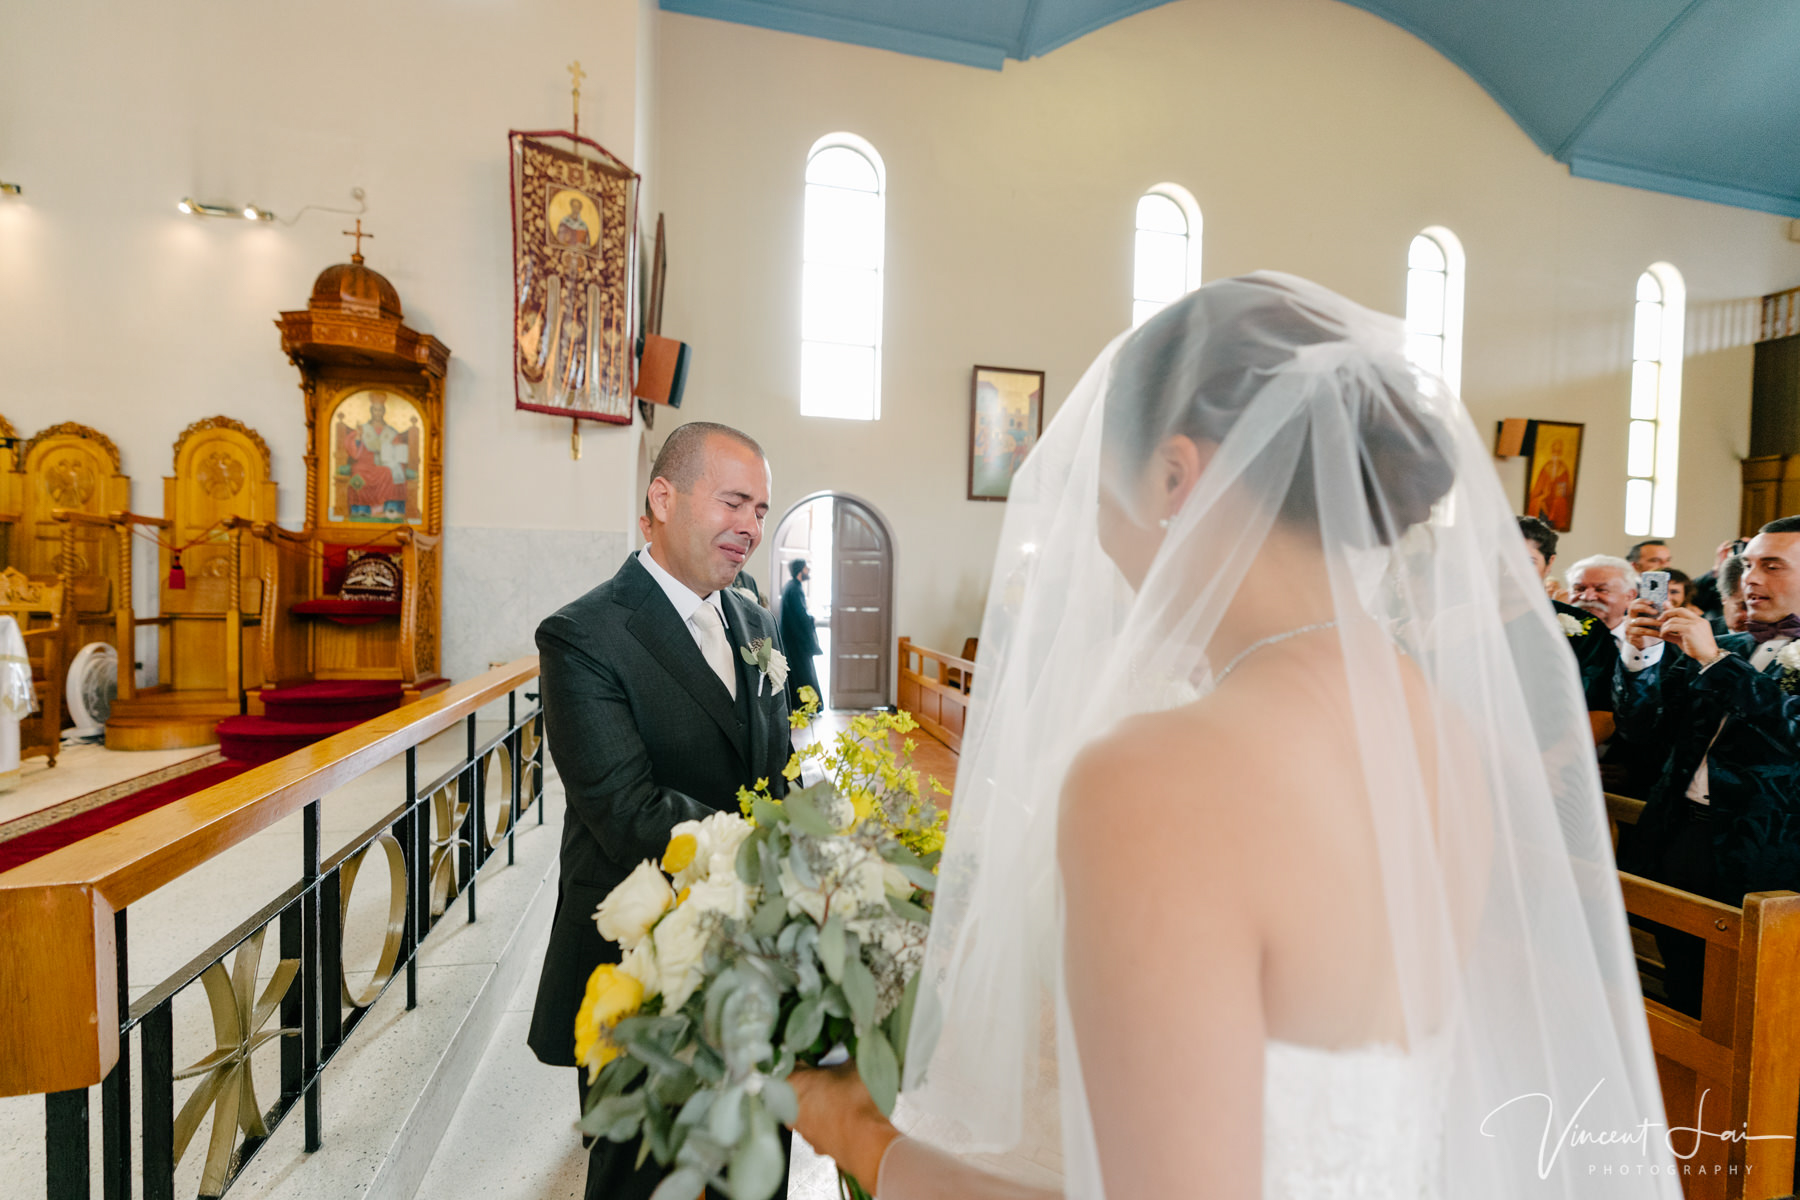 Wedding at St Nicholas Greek Orthodox Church and Sergeants Mess Reception